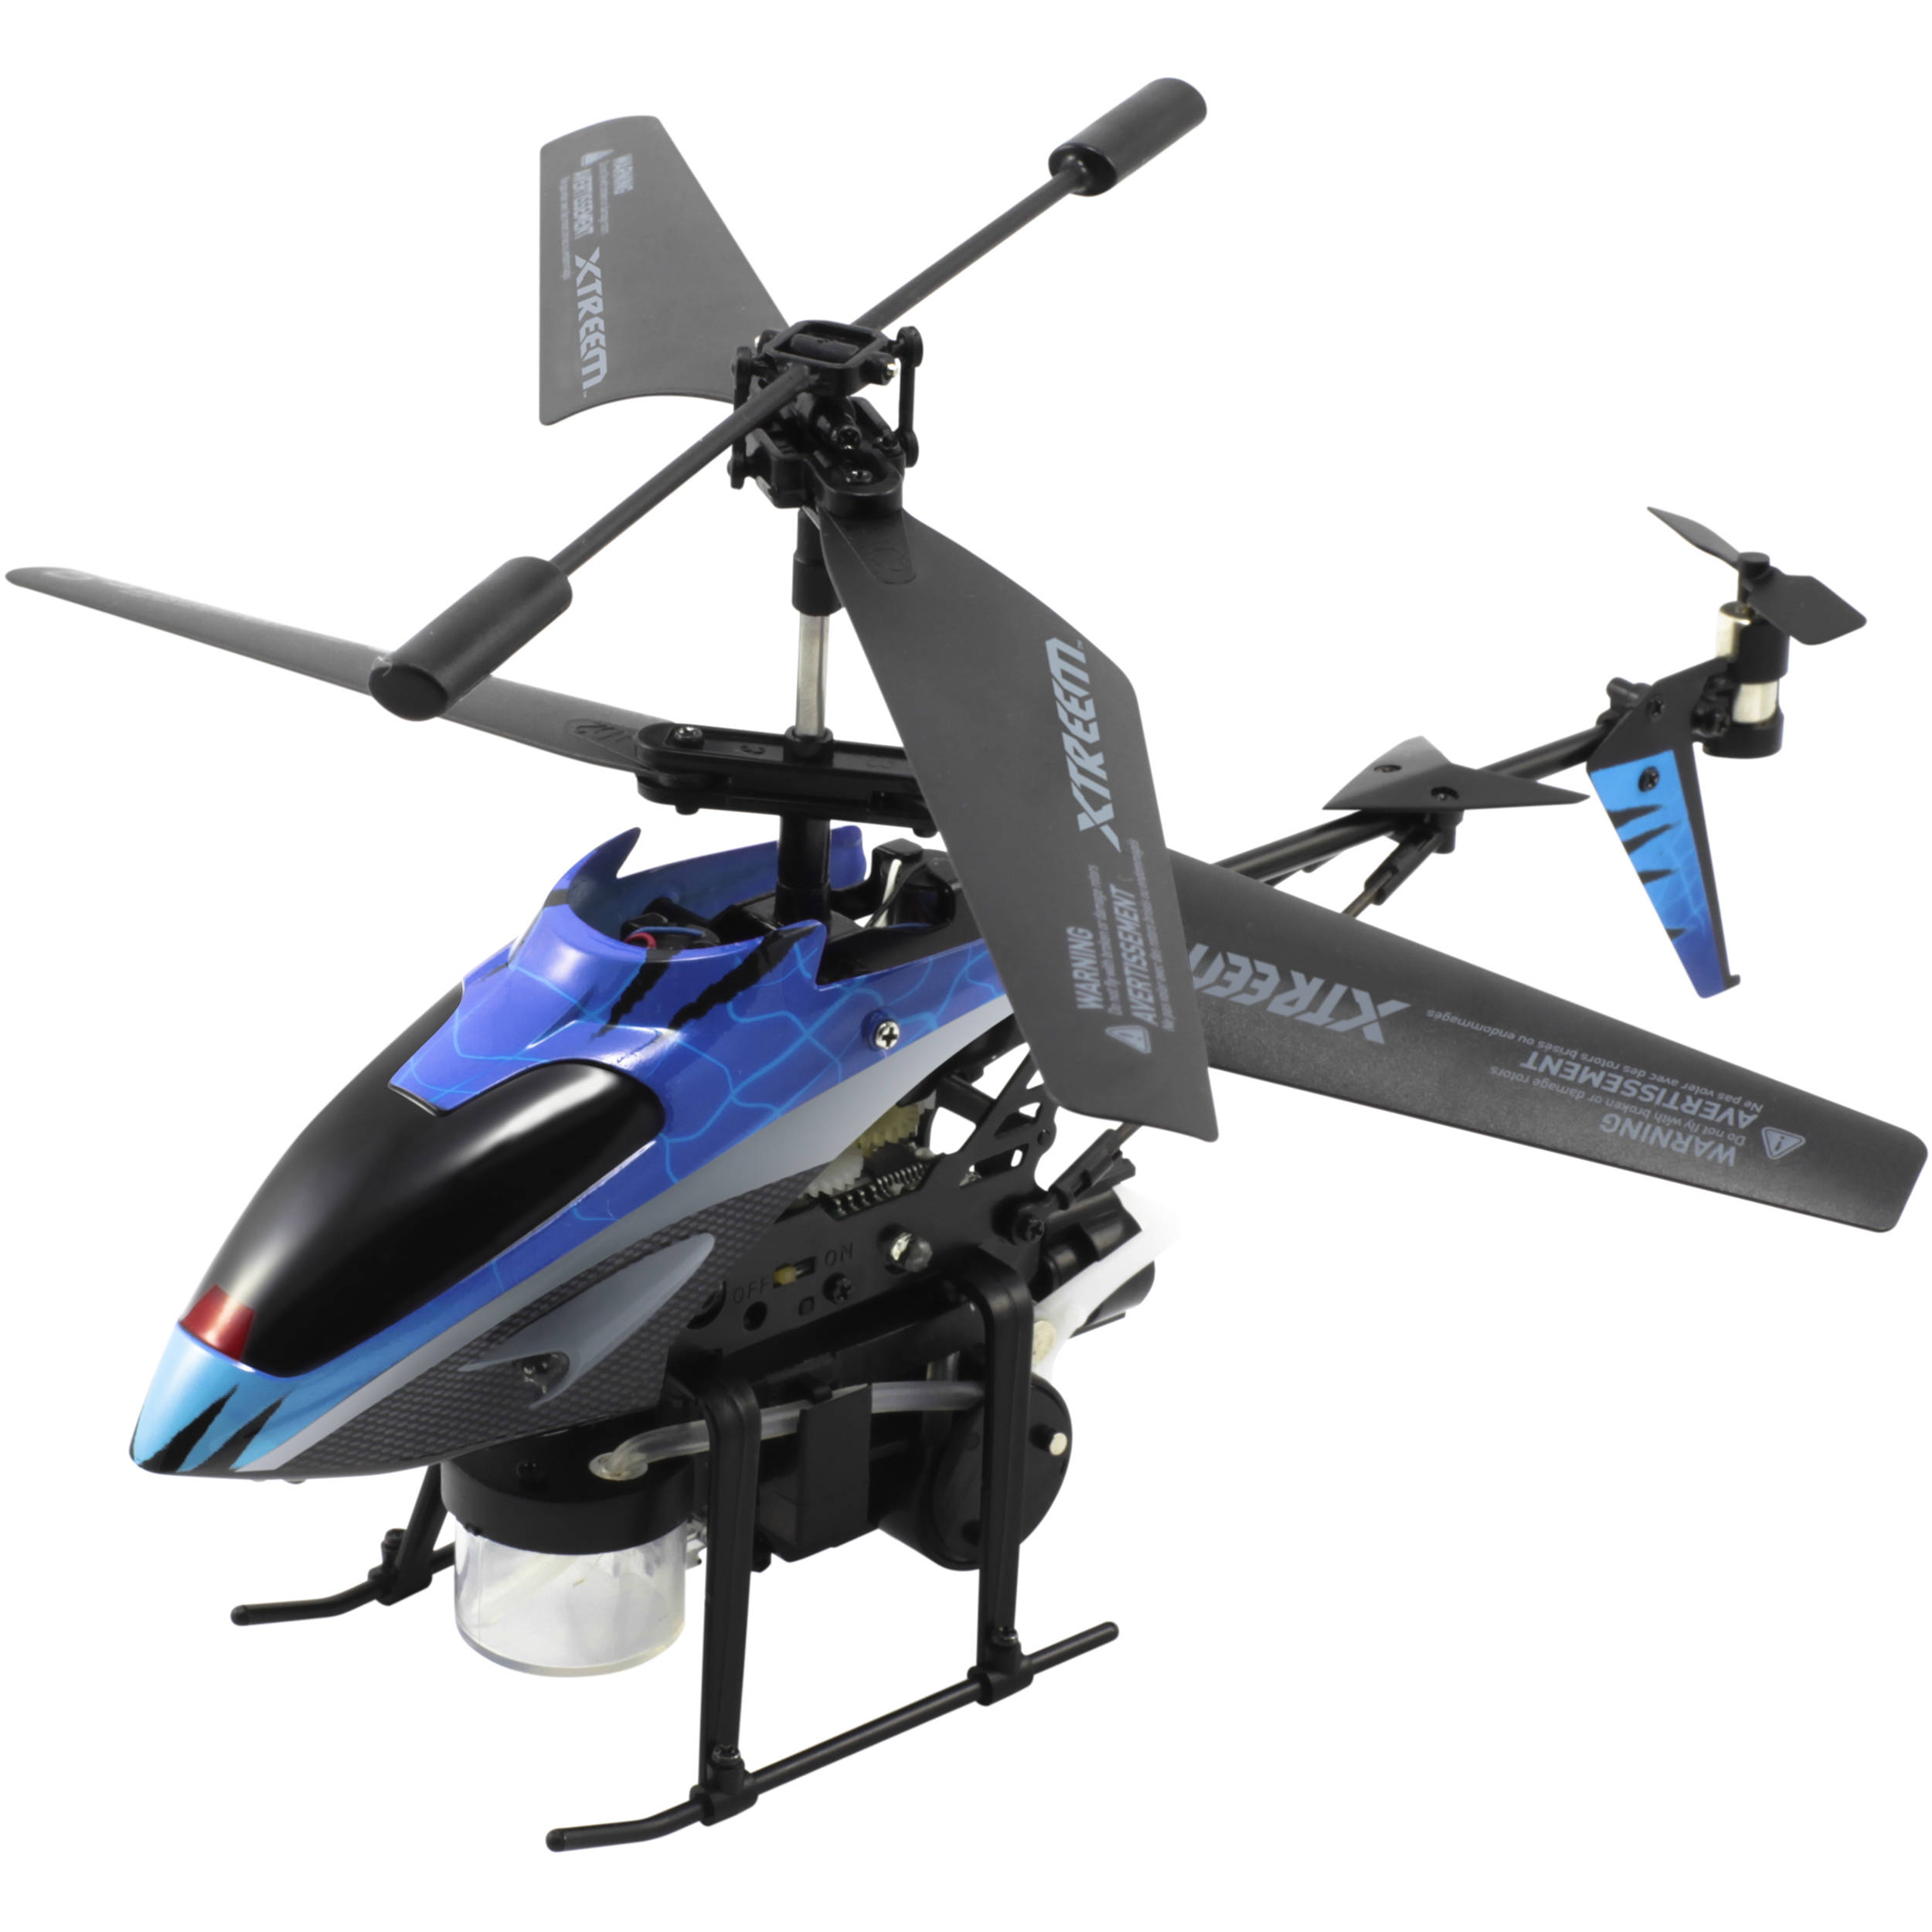 Swann Bubble Er Rc Helicopter